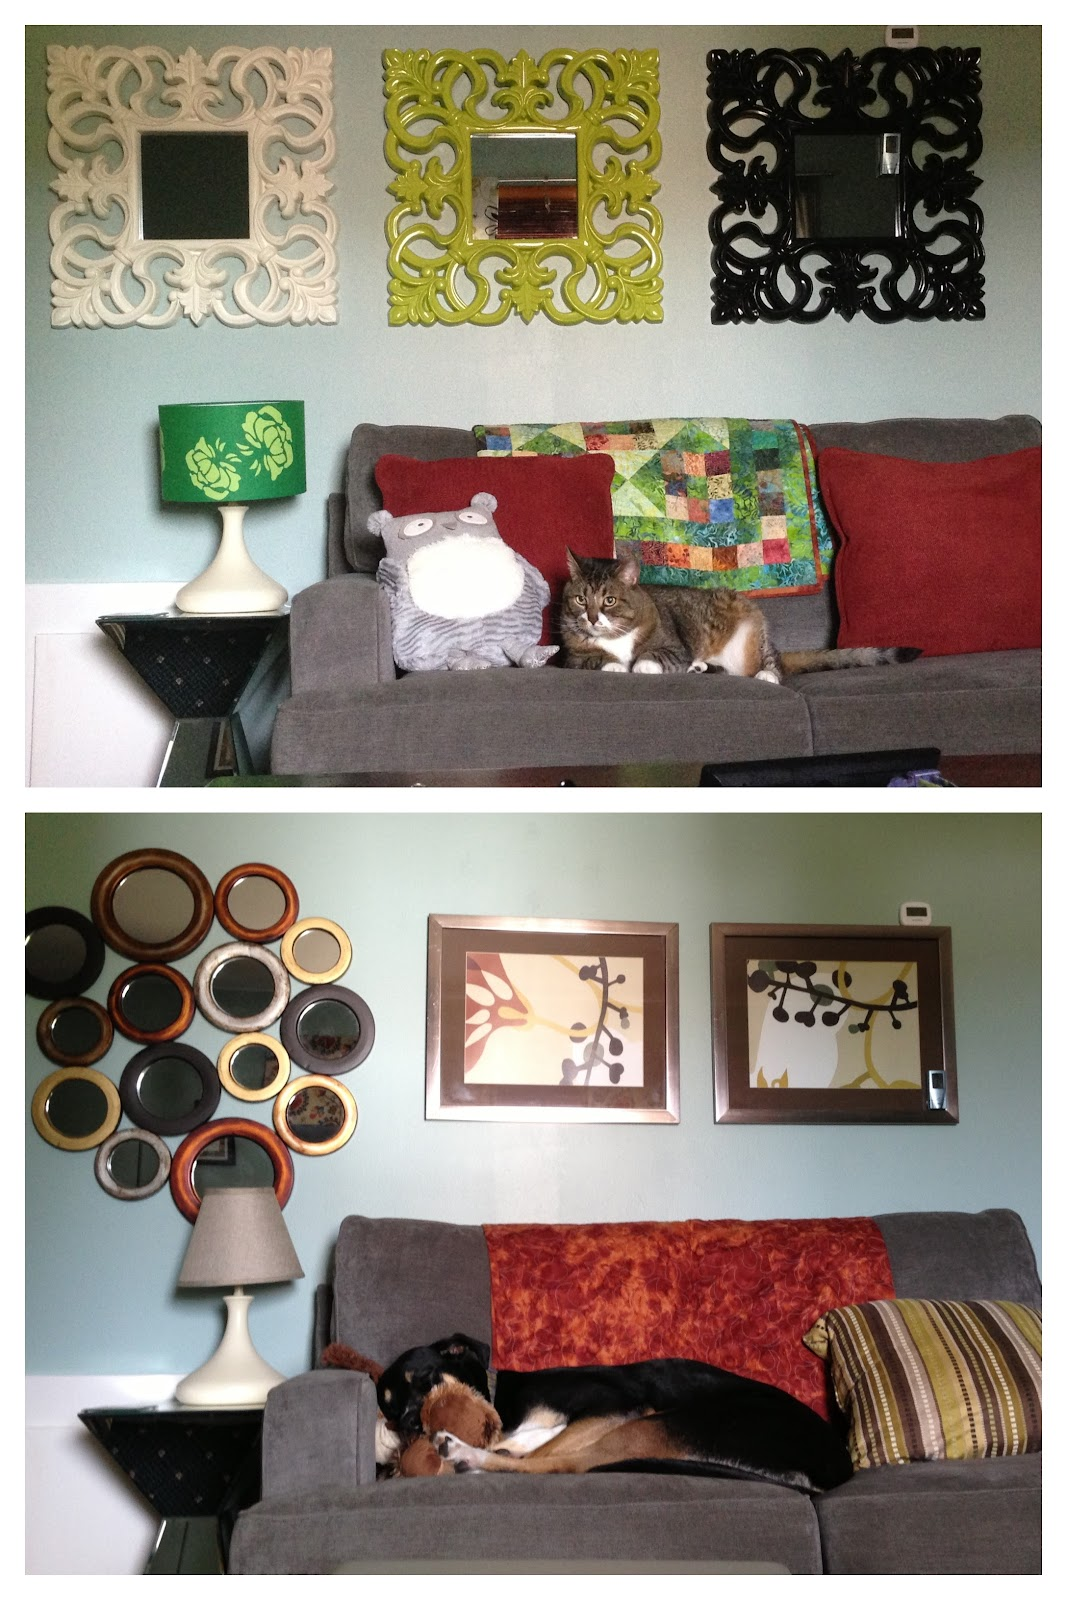 Swapping some decor pieces from summer to fall (or cat to dog?)